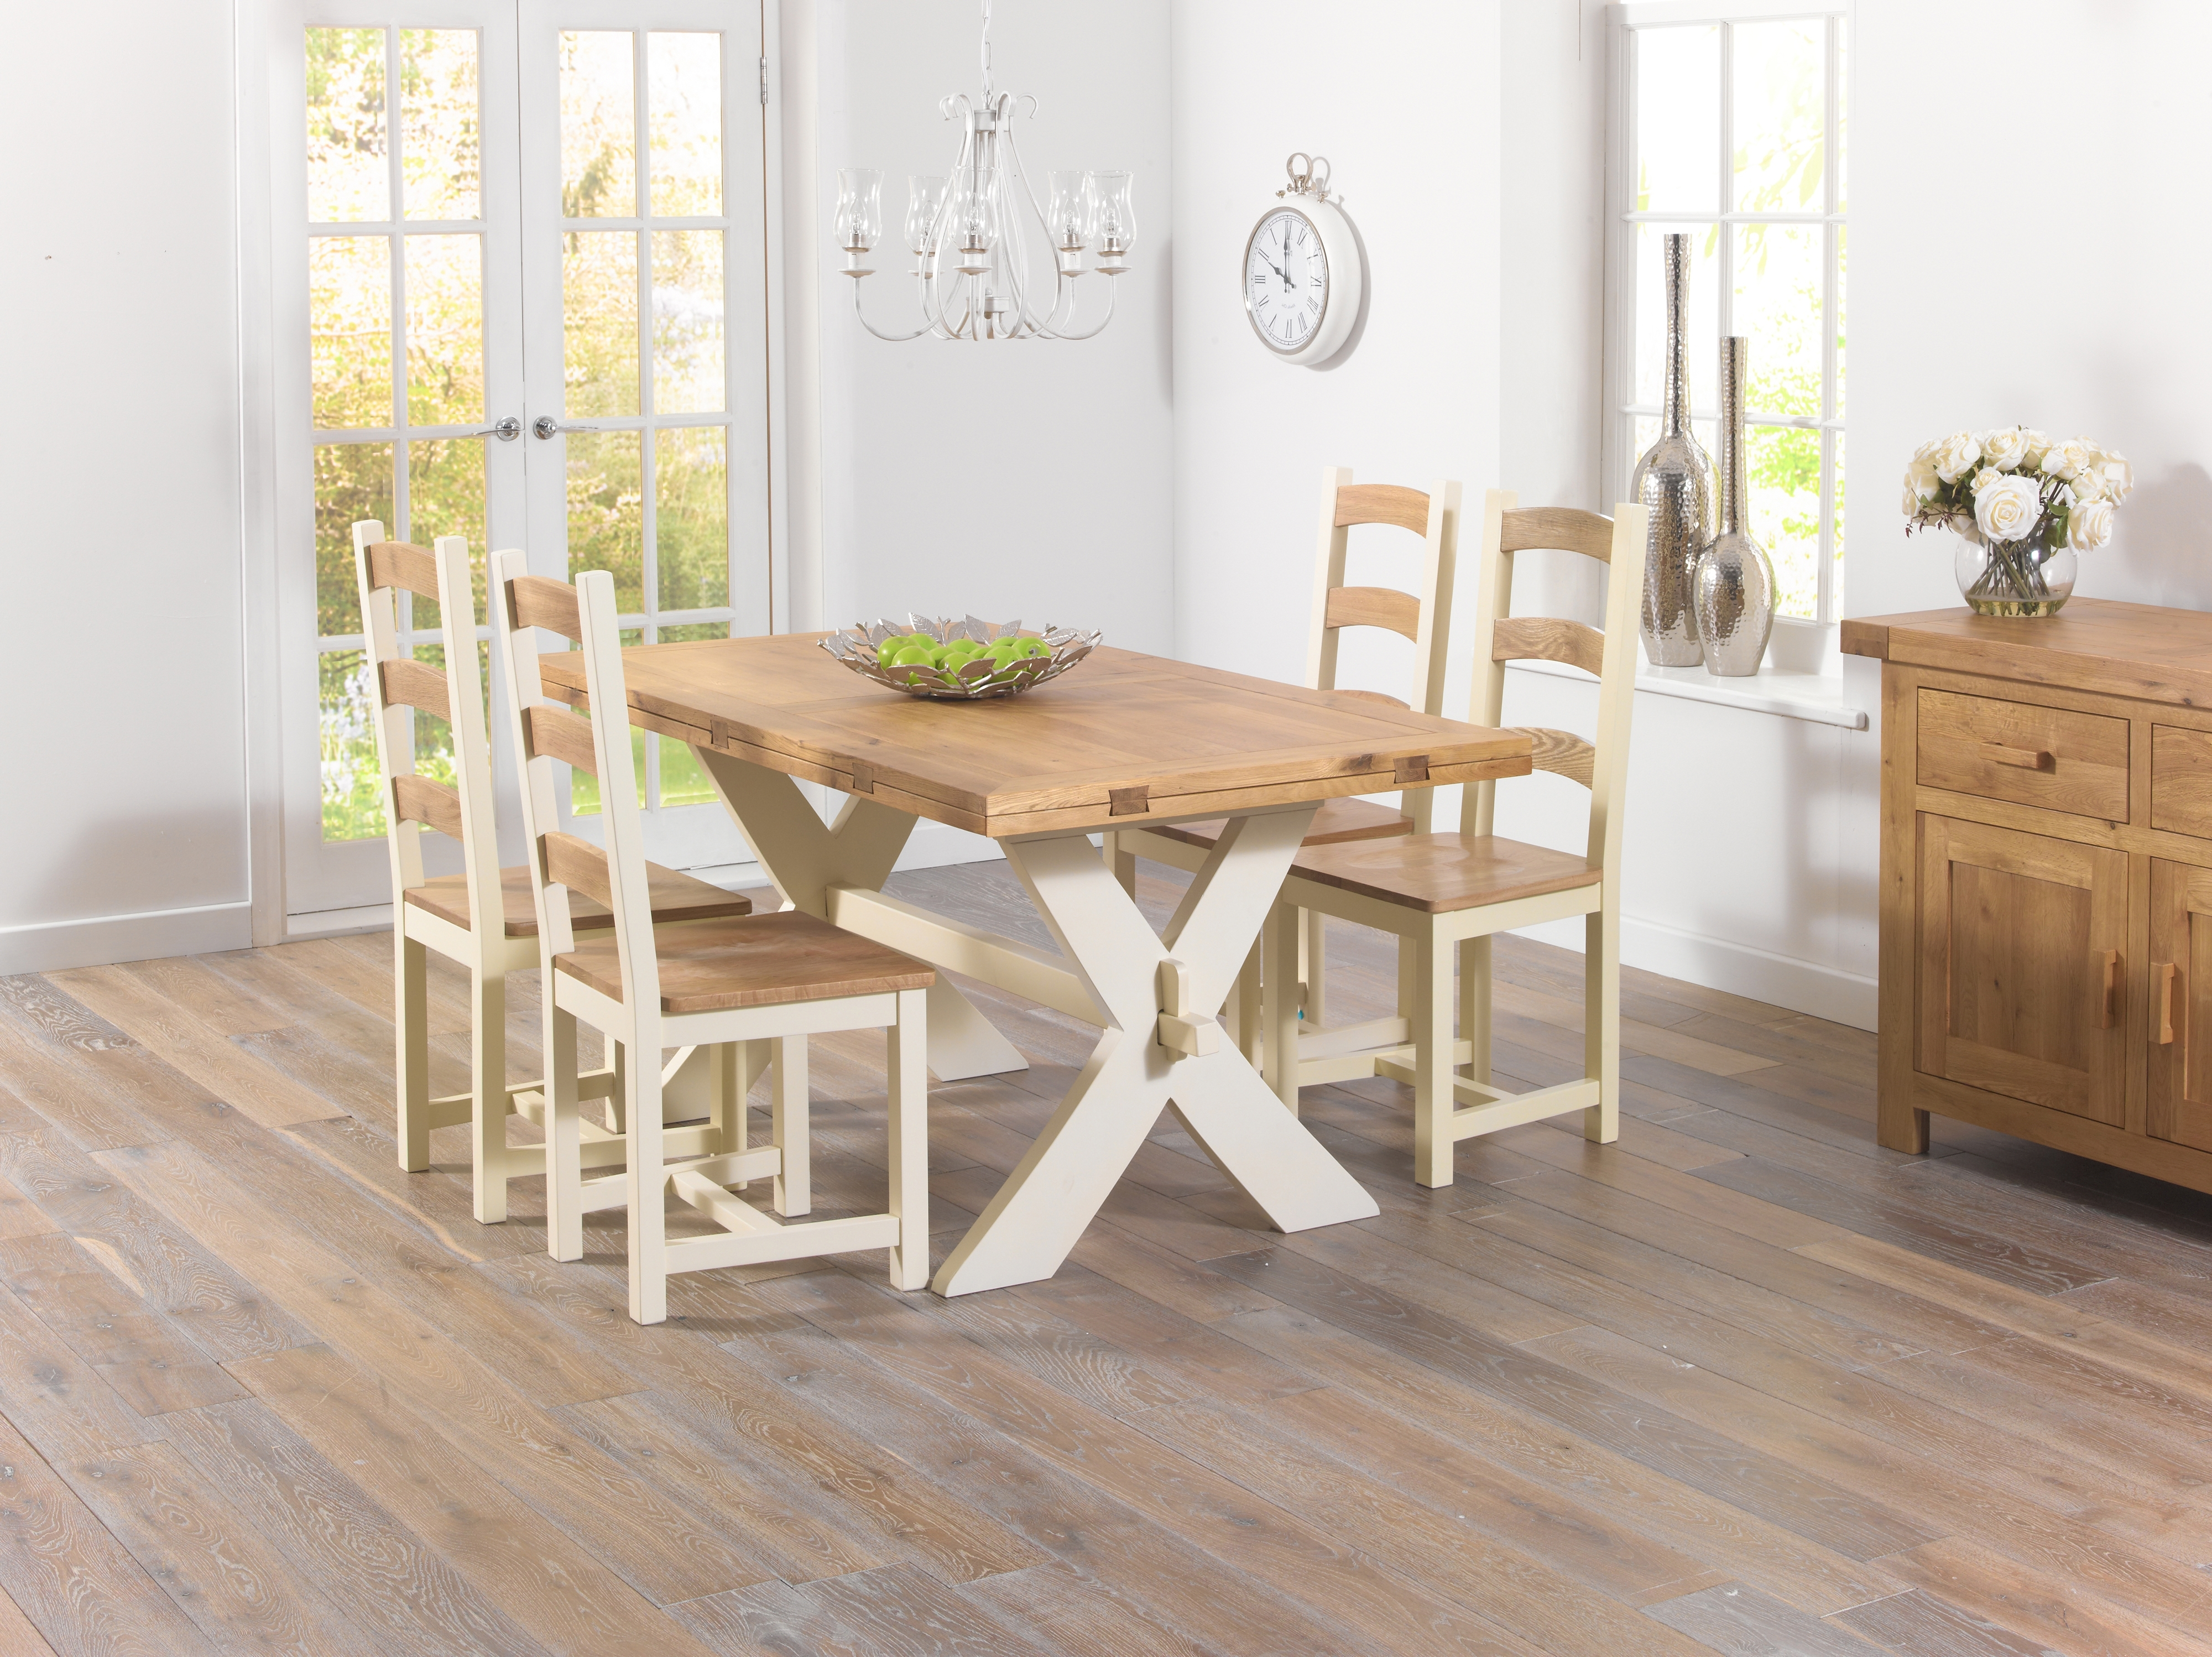 Widely Used Avignon Oak And Cream All Sides Dining Table + Marino Chairs – £ (View 25 of 25)